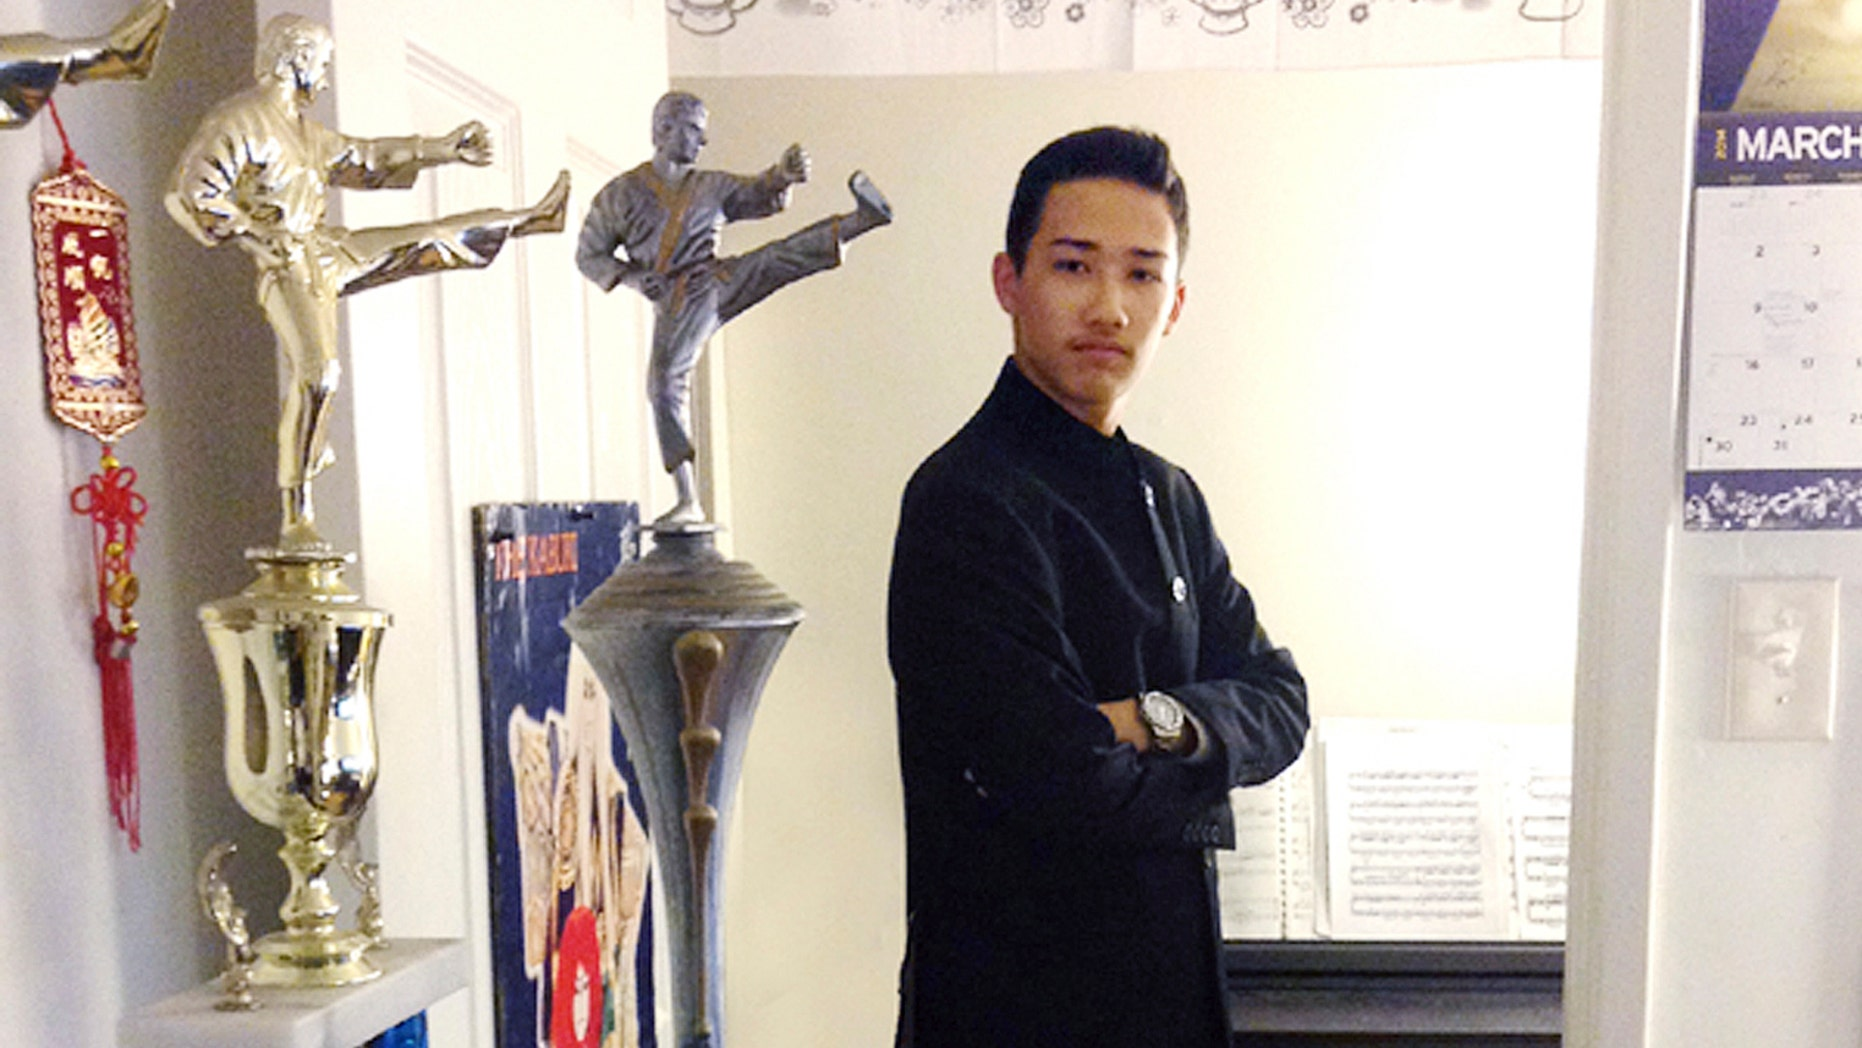 This August 2015 photo provided by Shu Chien shows her son Moshe Kai Cavalin at their home in San Gabriel, Calif. Cavalin earned a bachelorâs in math from UCLA at age 15, and is taking online classes through Brandeis University, near Boston, towards a masterâs in cybersecurity. Heâs also working for NASA, where he is developing aircraft tracking technology. (Shu Chien via AP)